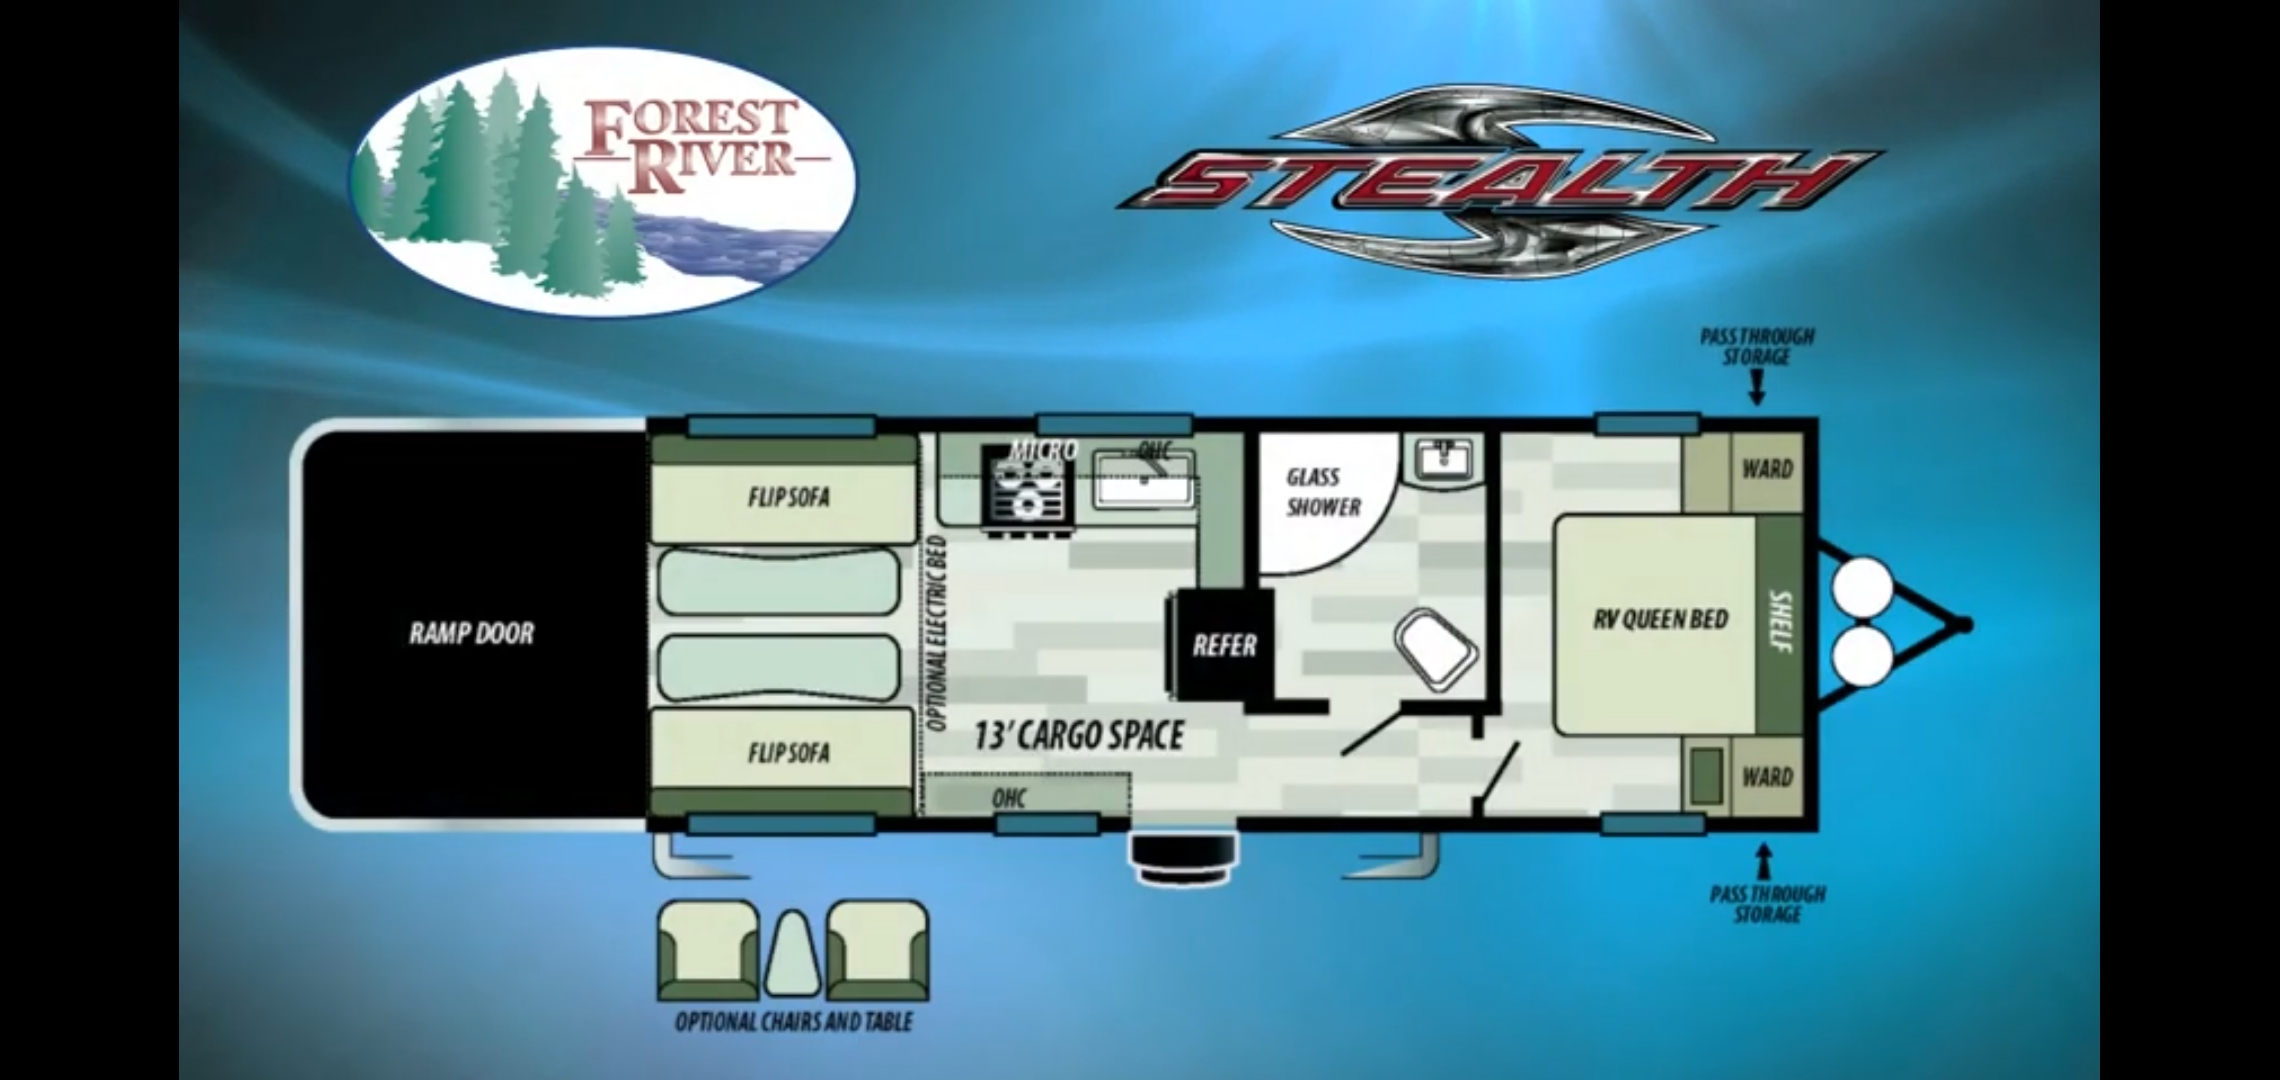 My trailer layout has the 2 captain's chair option.. Forest River Stealth 2018